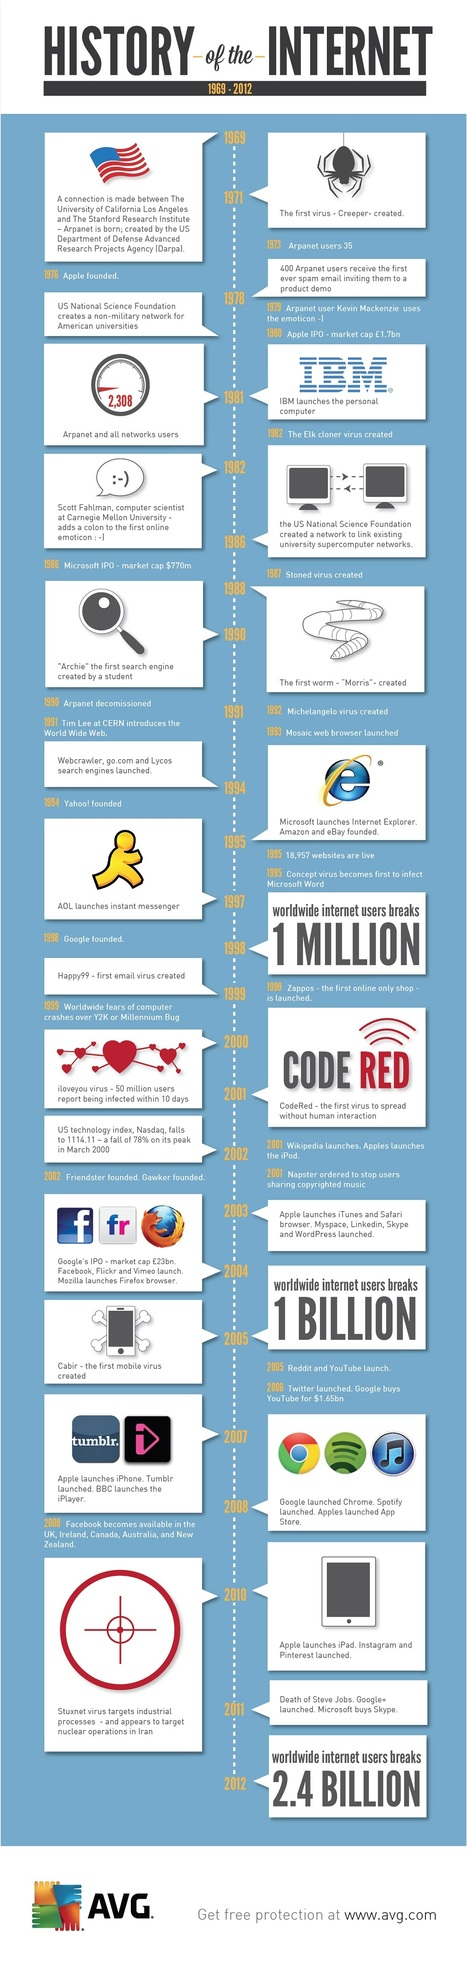 Milestones in the History of the Internet [Infographic] | Latest eCommerce News | Scoop.it